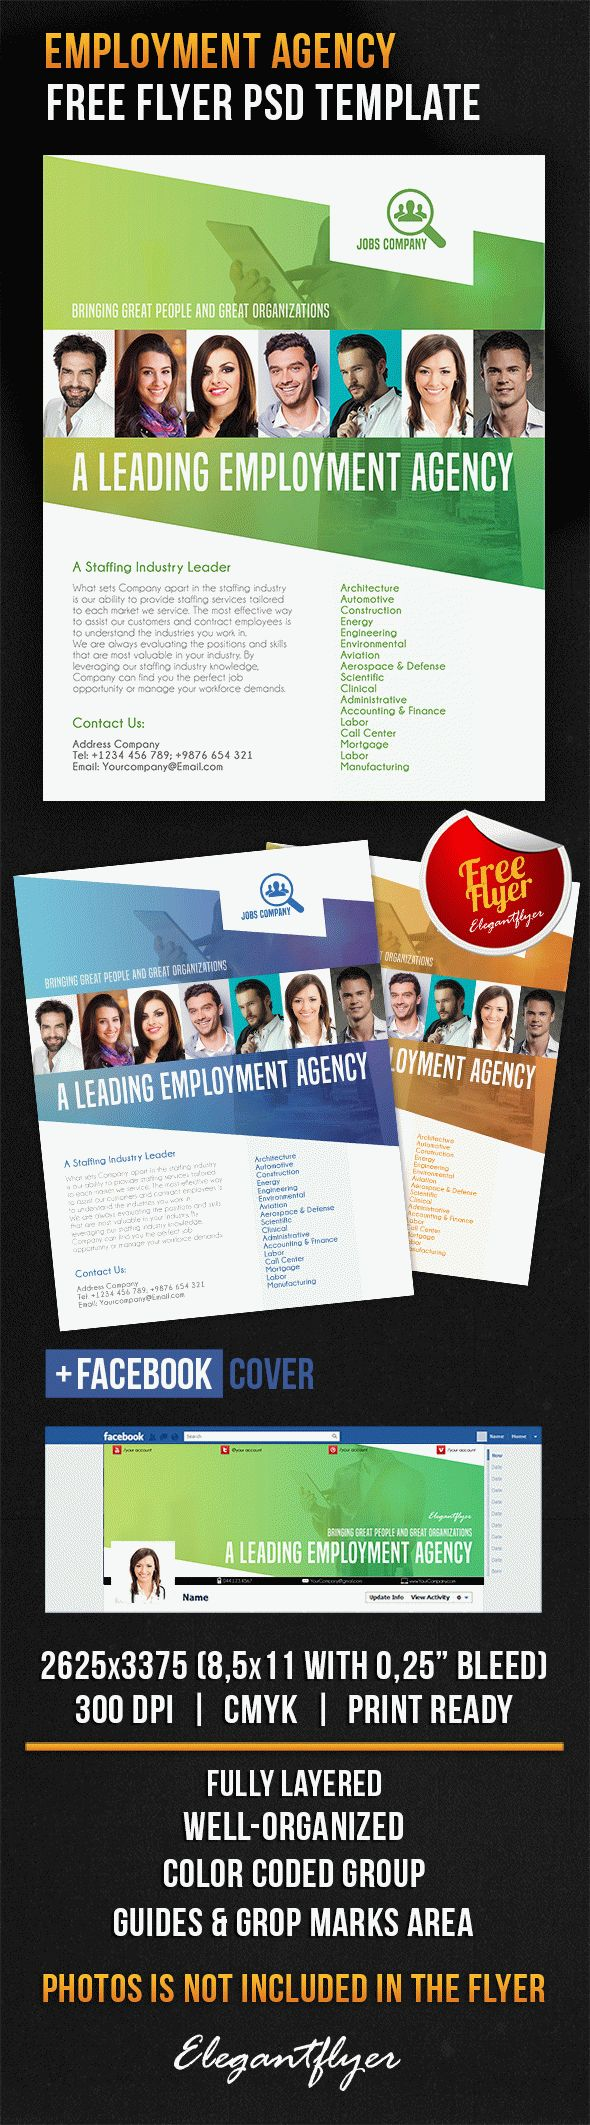 Employment Agency – Free Flyer PSD Template + Facebook Cover